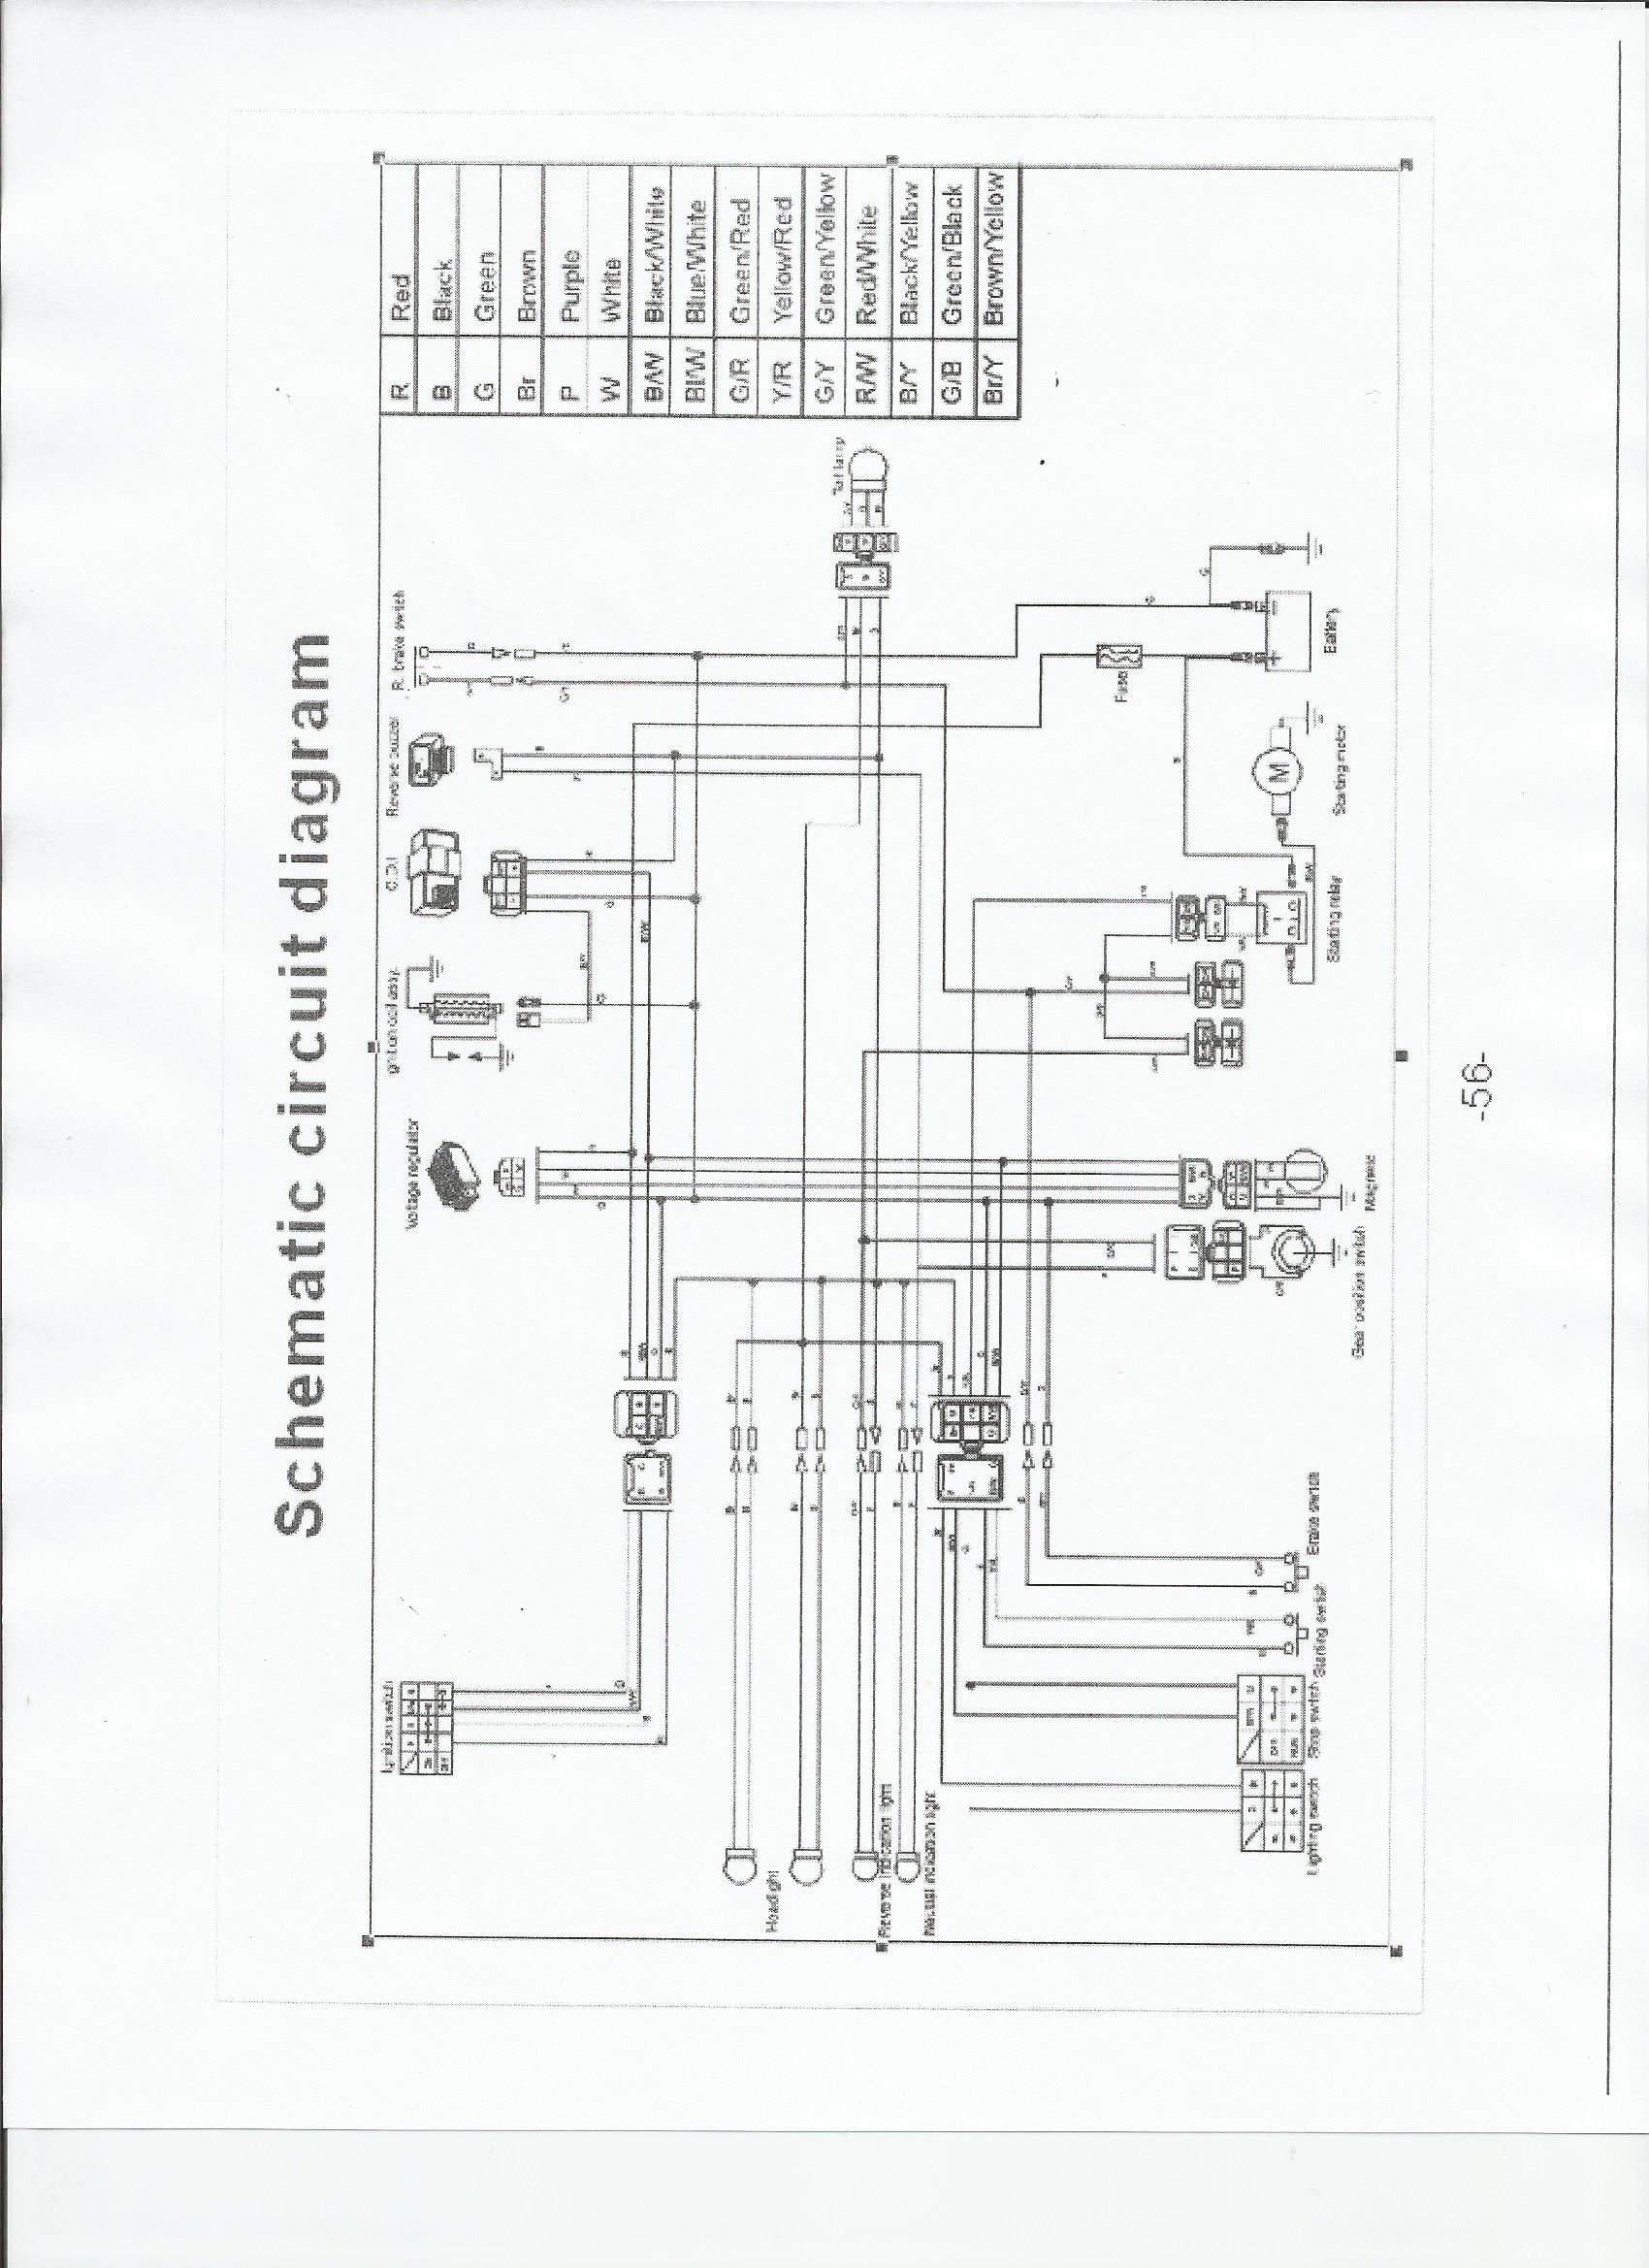 tao 125 atv wiring diagram trusted schematics wiring diagrams u2022 rh bestbooksrichtreasures com